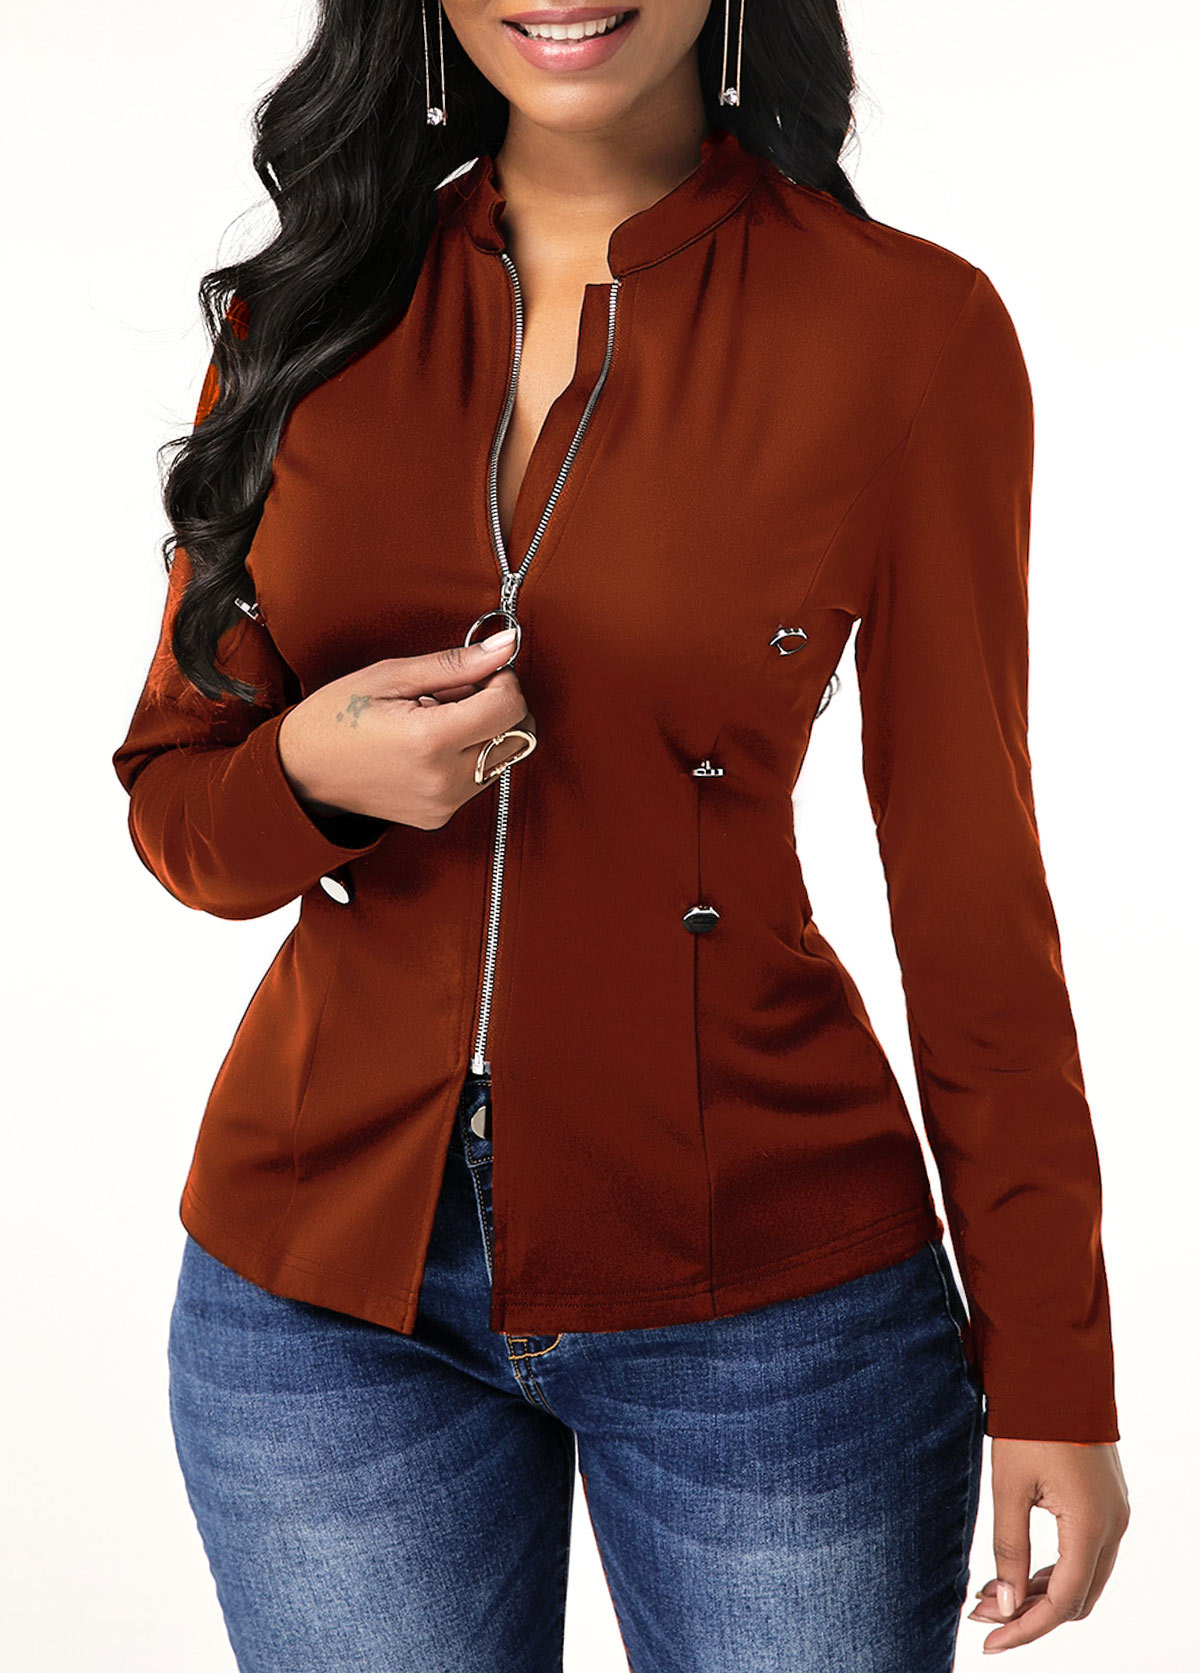 Zipper Closure Long Sleeve Button Decorated Jacket